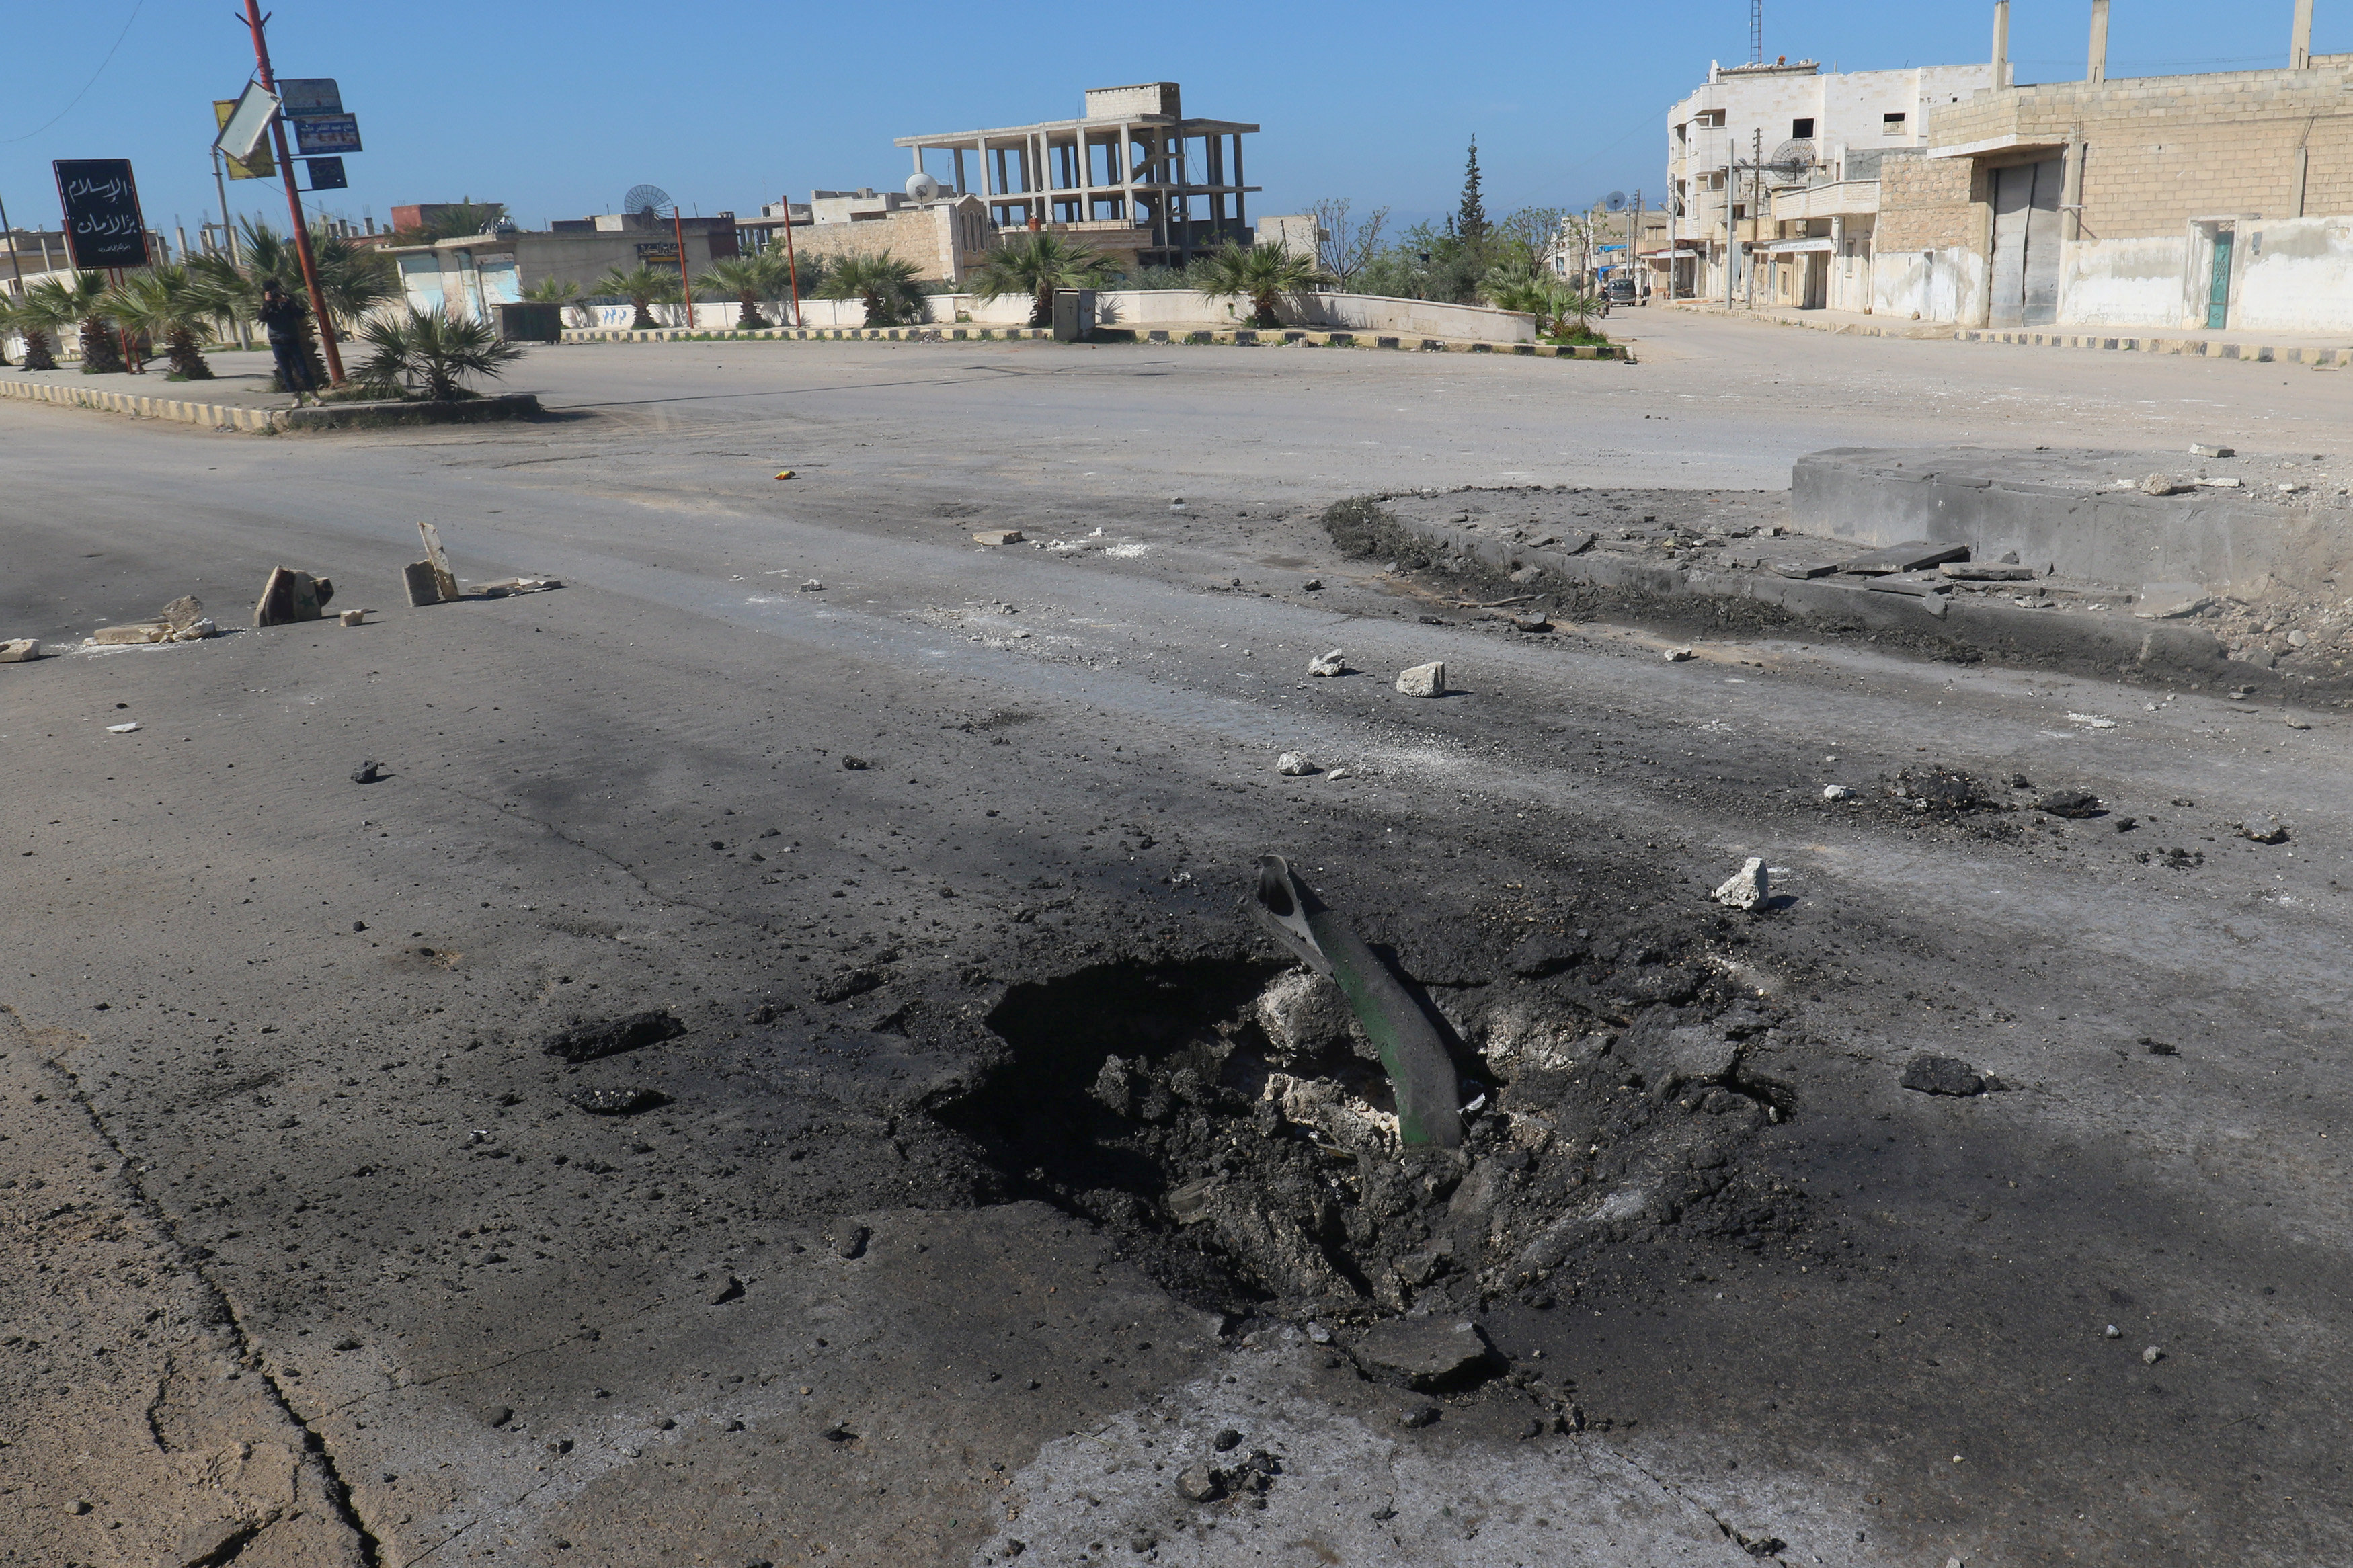 A crater is seen at the site of an airstrike, after what rescue workers described as a suspected gas attack in the town of Khan Sheikhoun in rebel-held Idlib, Syria on April 4, 2017. (REUTERS/Ammar Abdullah)